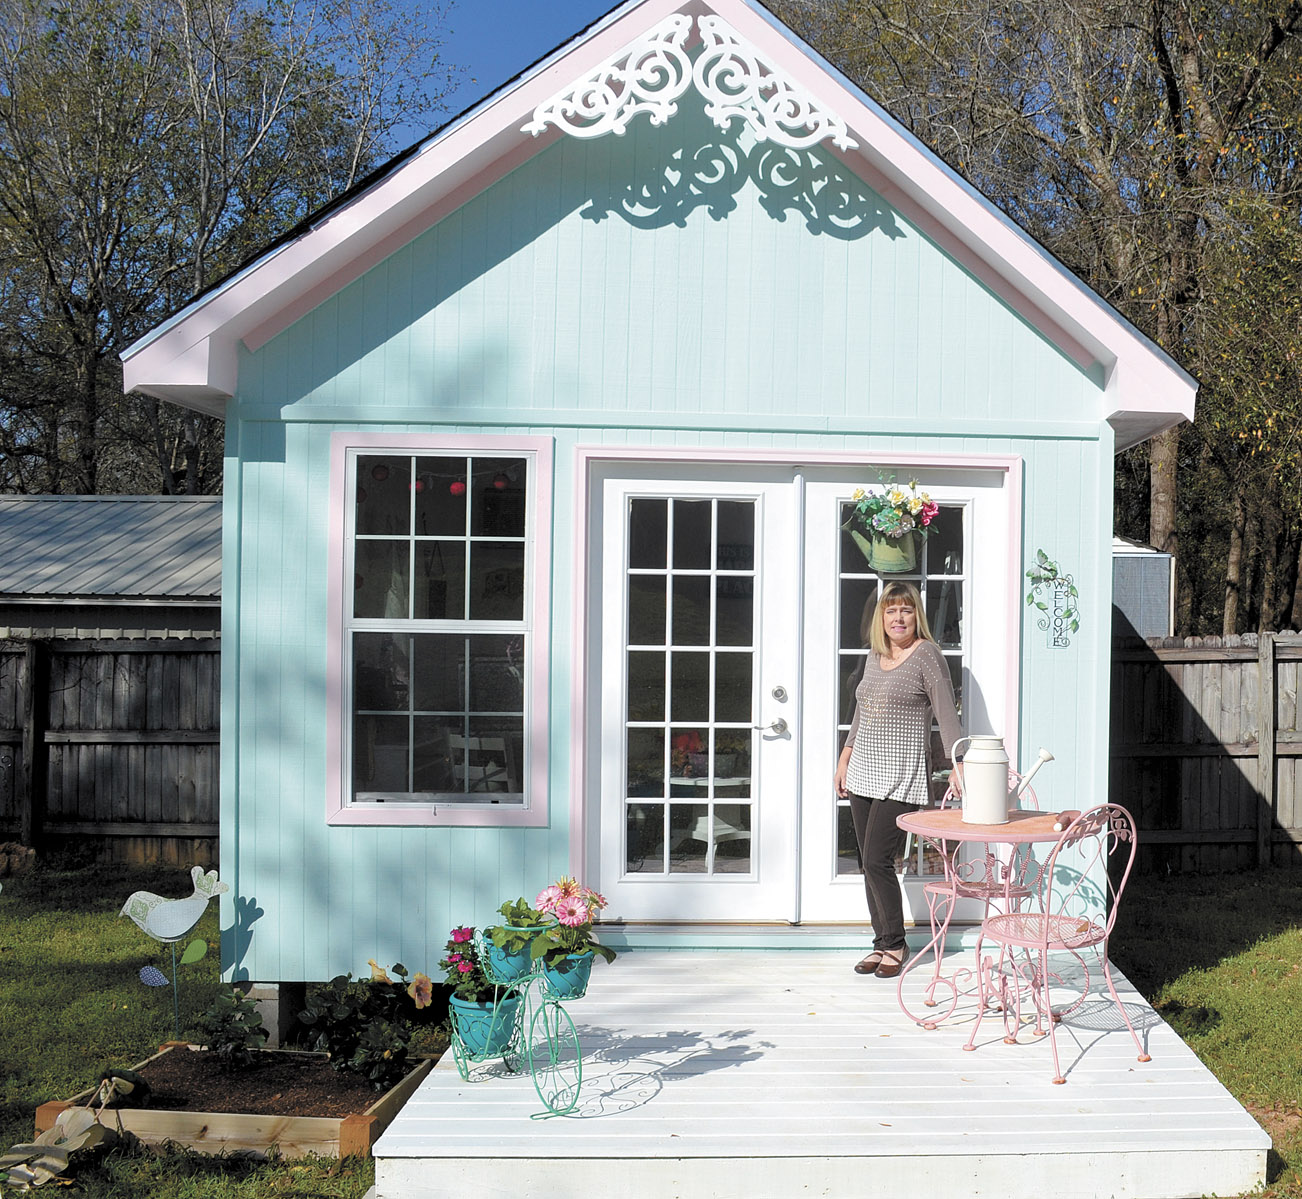 Forget About The Man Cave Build Her A She Shed